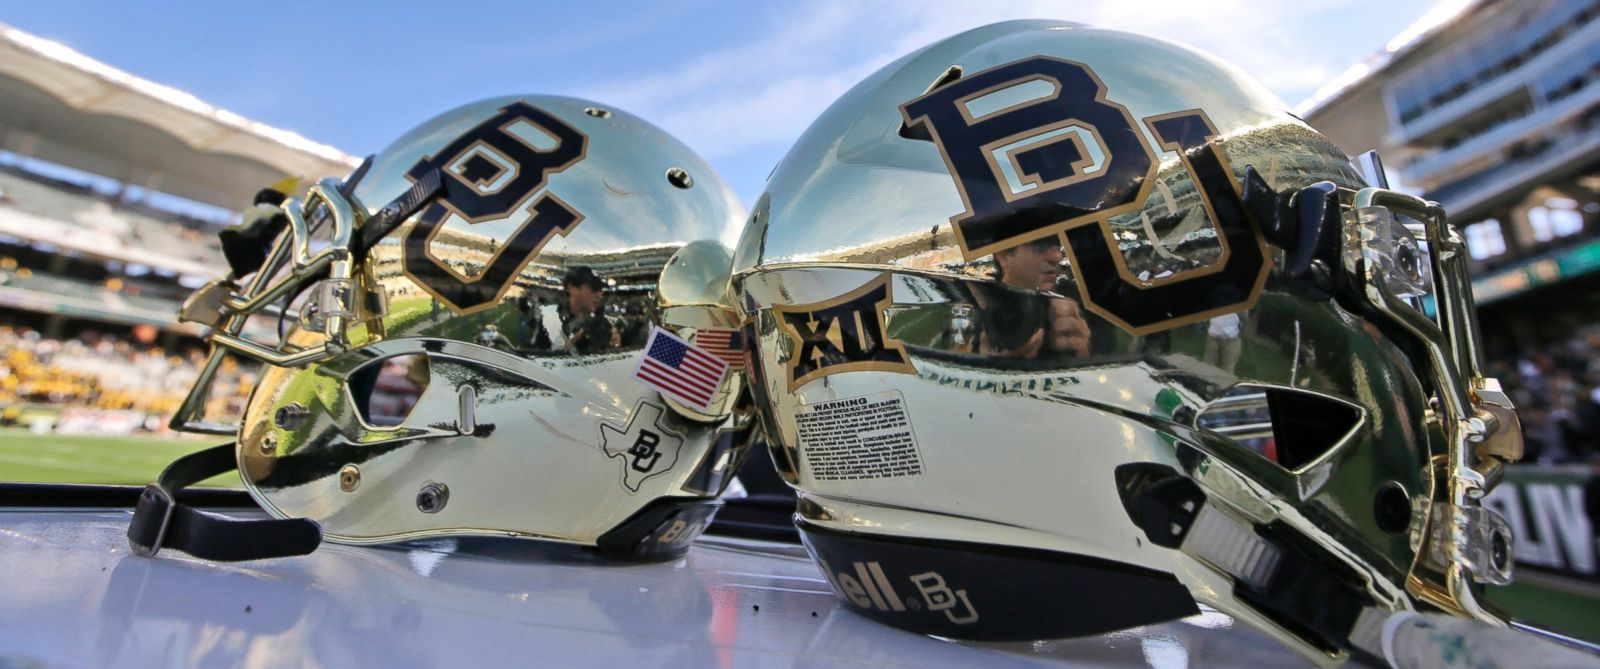 PHOTO: Baylor helmets on shown the field after an NCAA college football game in Waco, Texas.